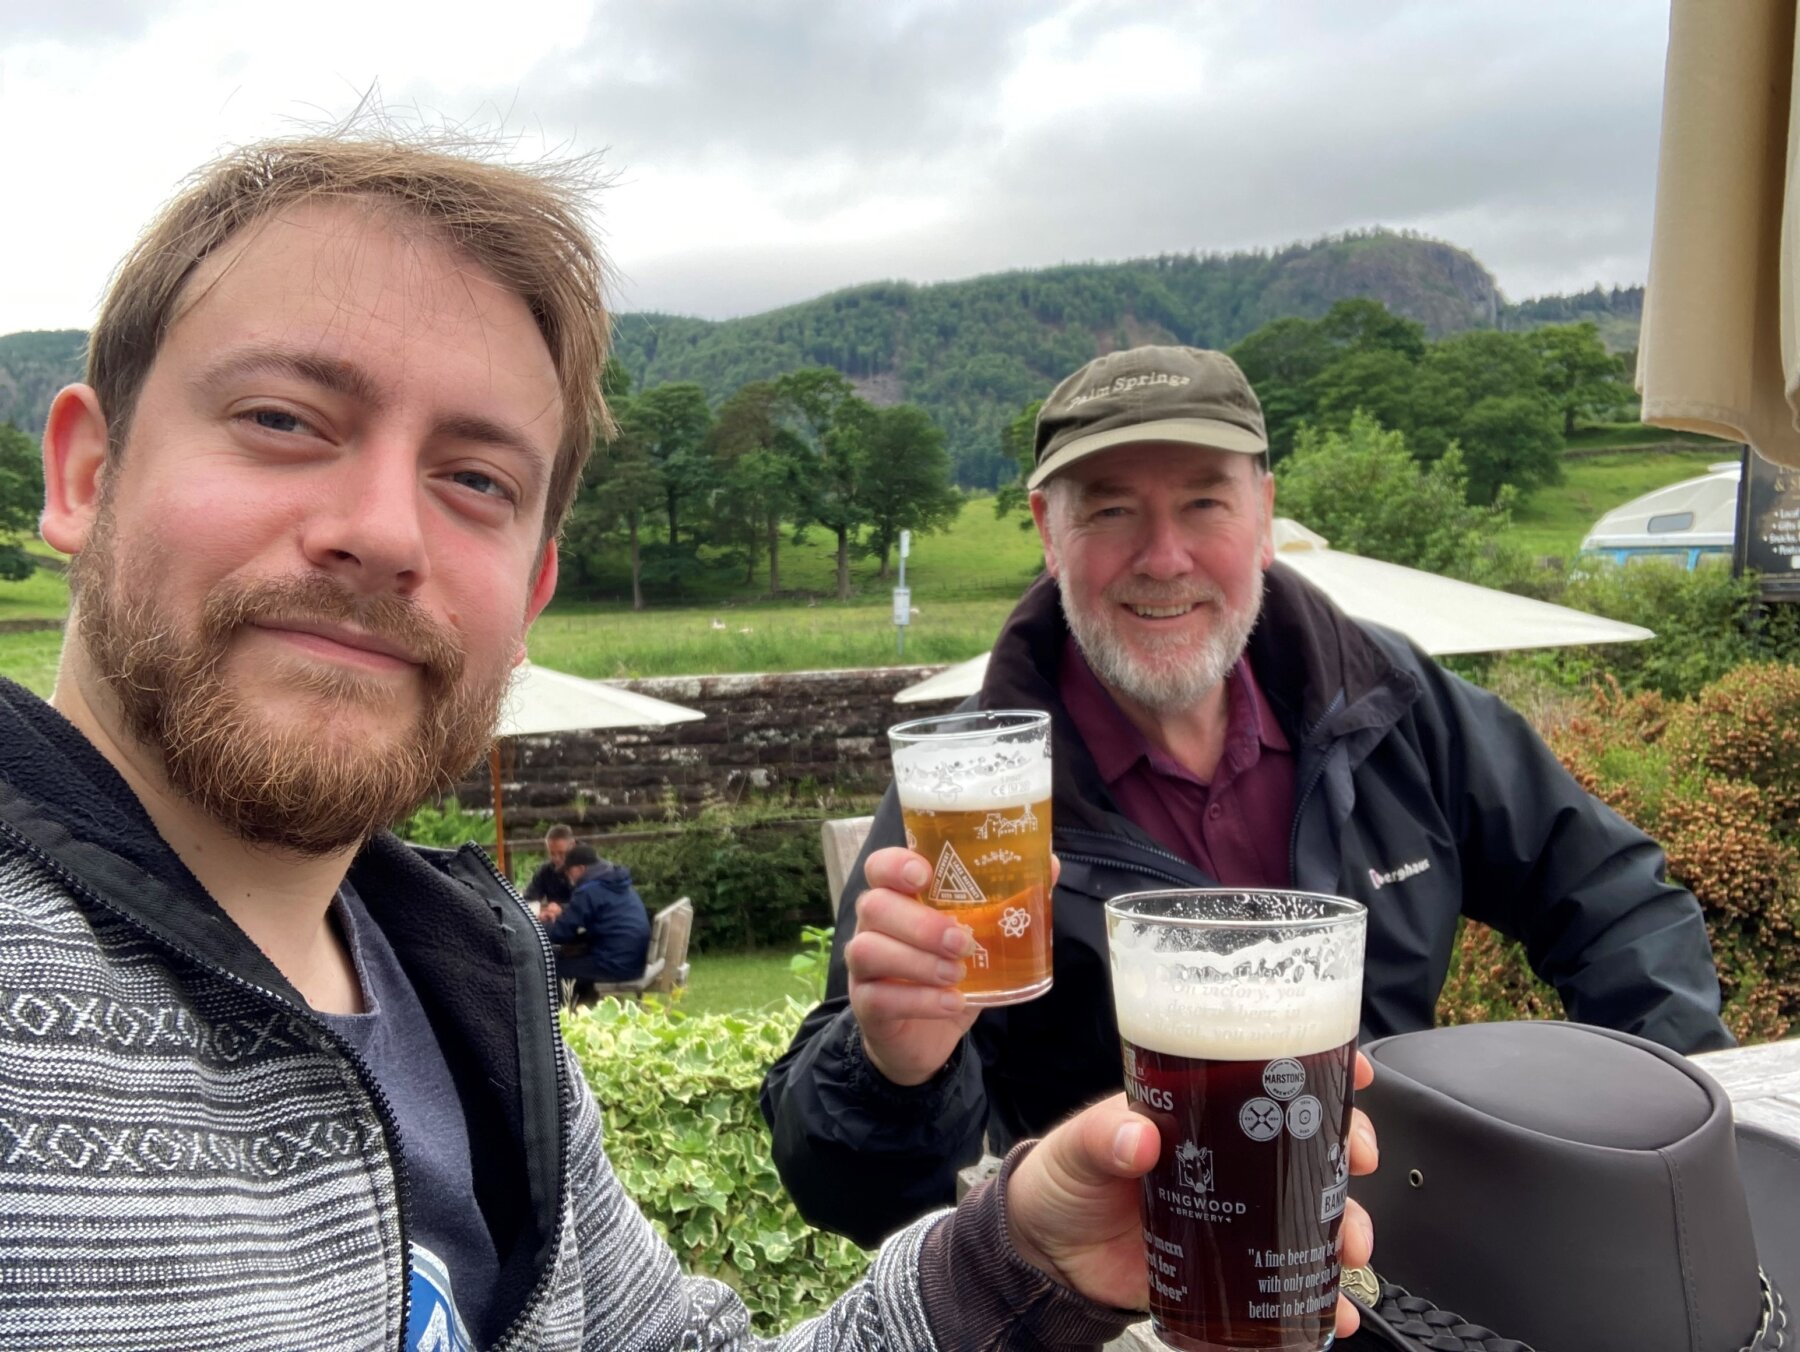 Steve Haswell and his son Simon taken at Helvellyn on one of their practice walks for the Daisy Appeal fundraiser.